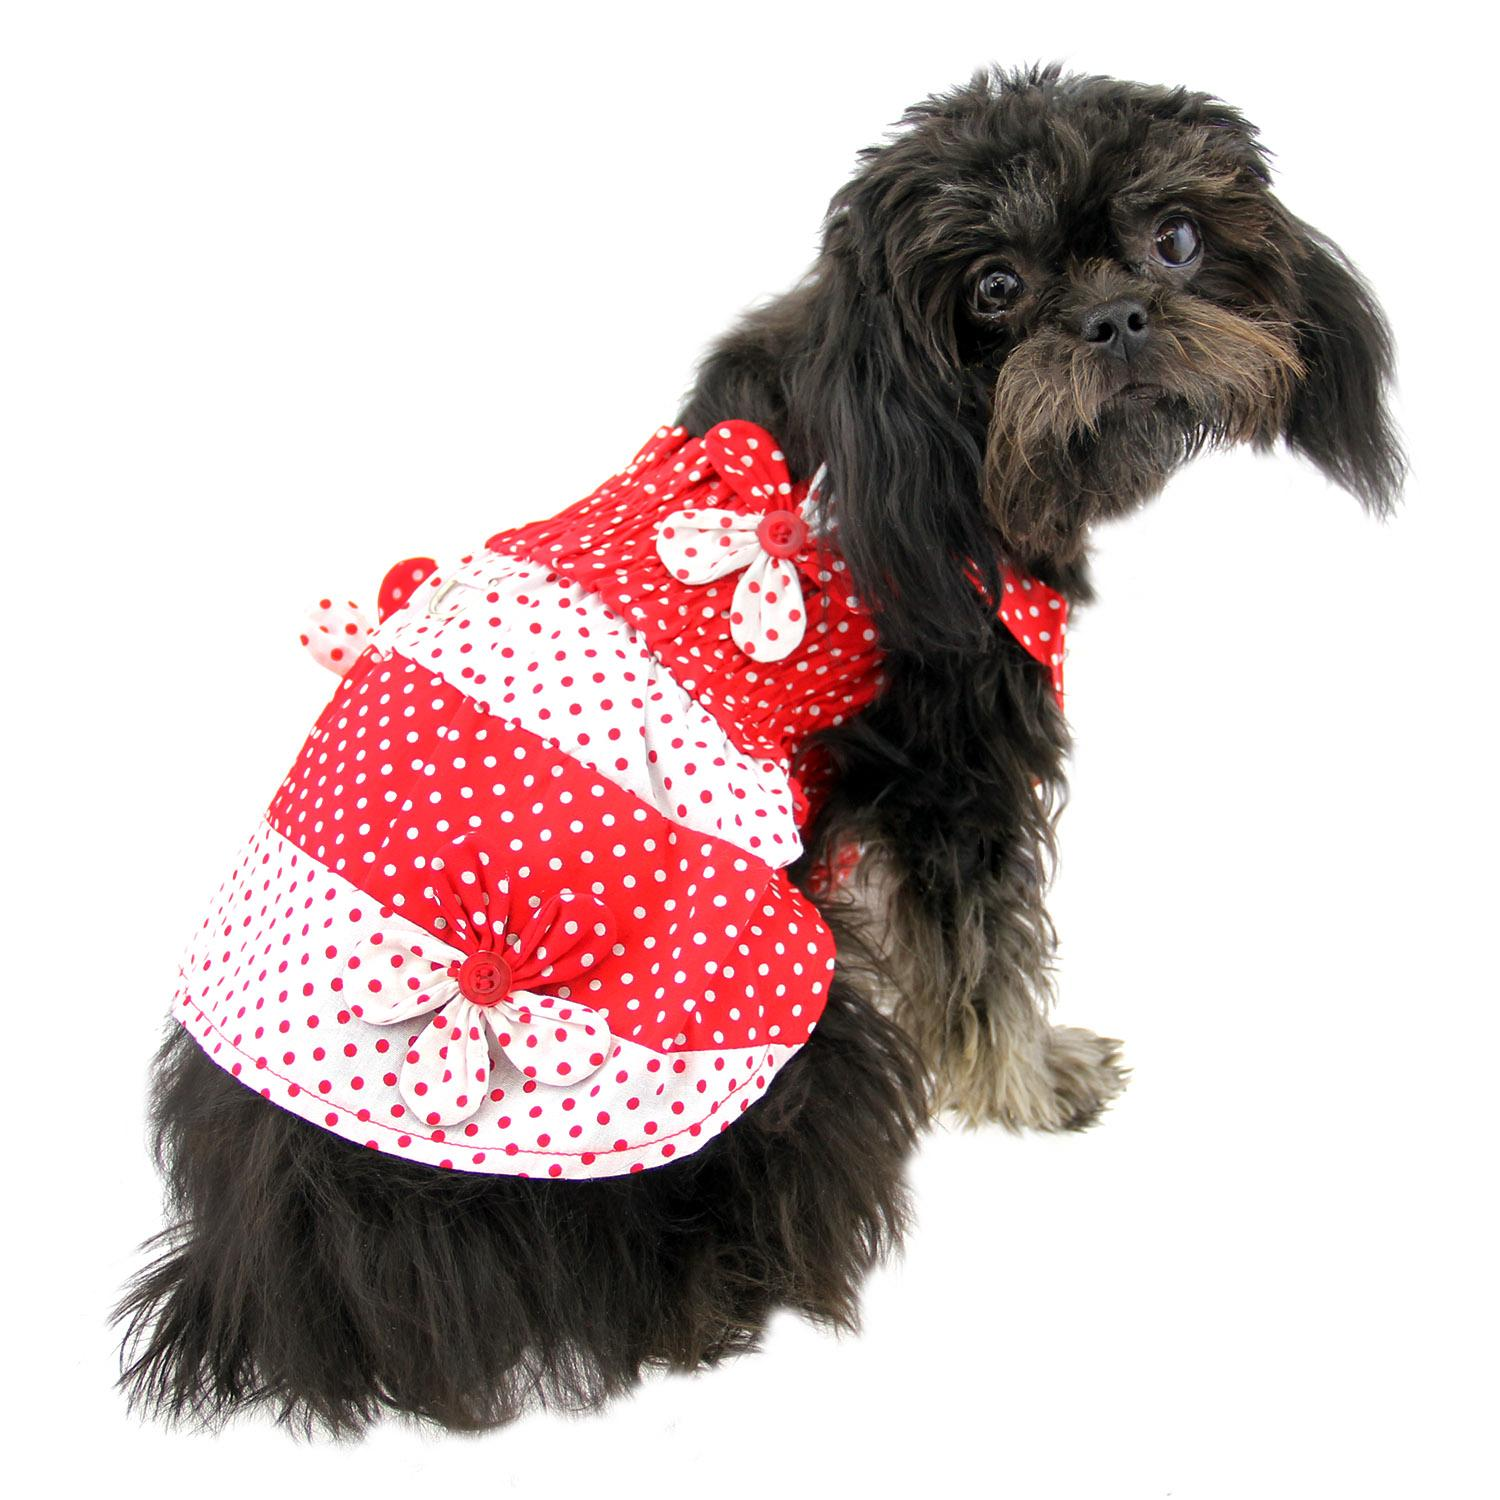 337013333b Polka Dot Dog Sundress by Klippo - Red and Wh...